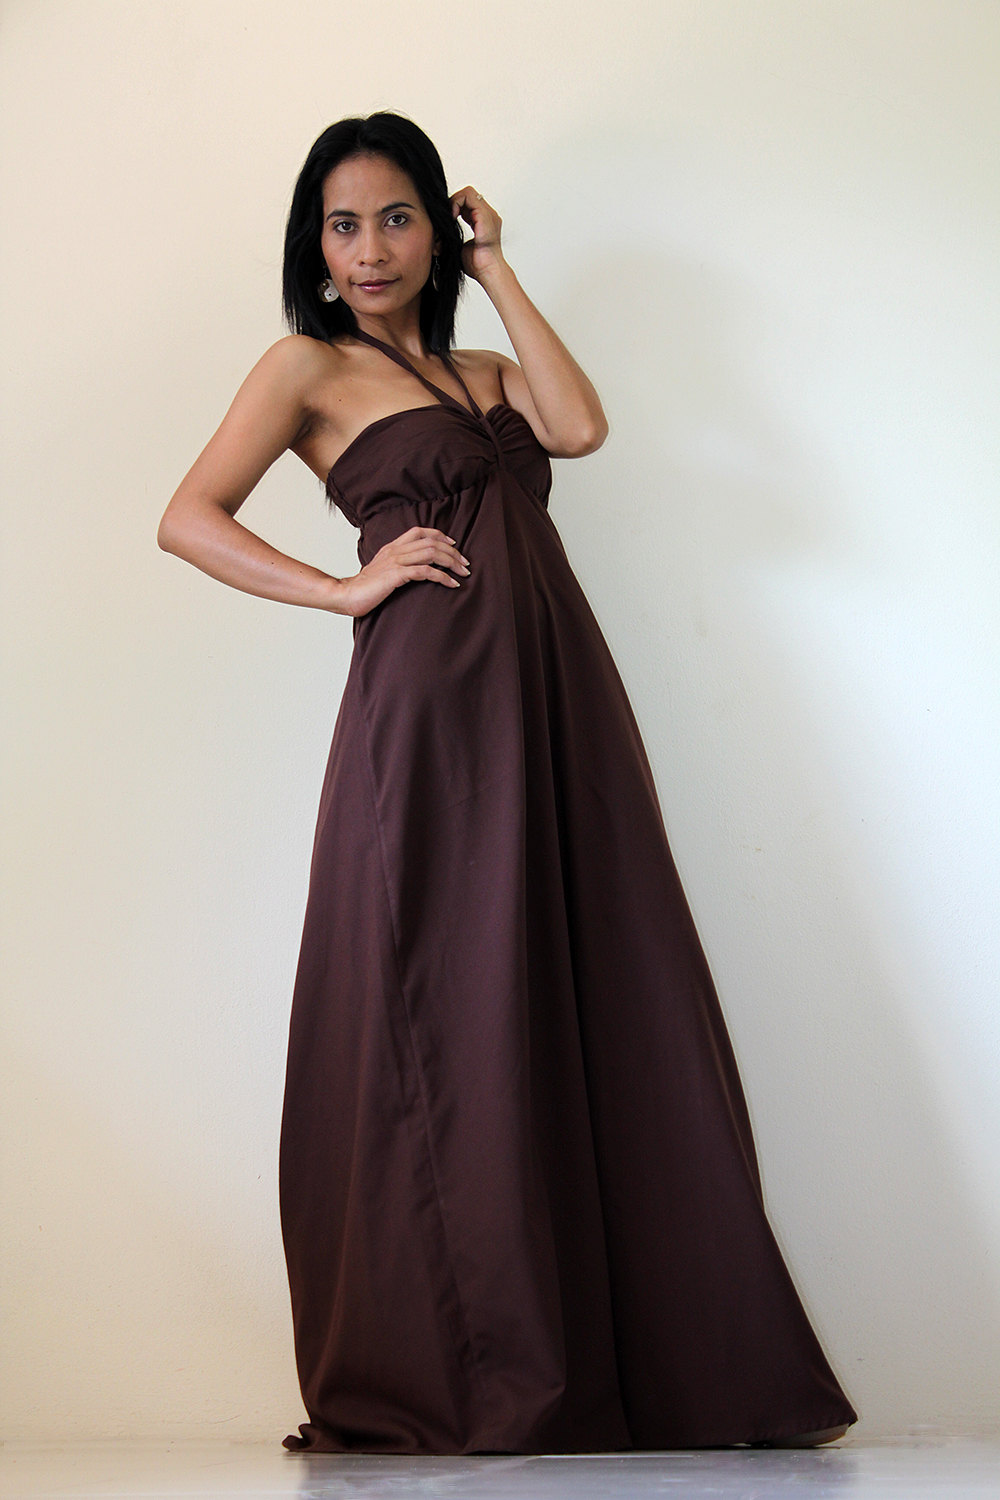 21417a0381c5 Brown Maxi Dress - Sexy Strapless Long Cotton Maxi Dress   New Cutie   Sexy  Collection